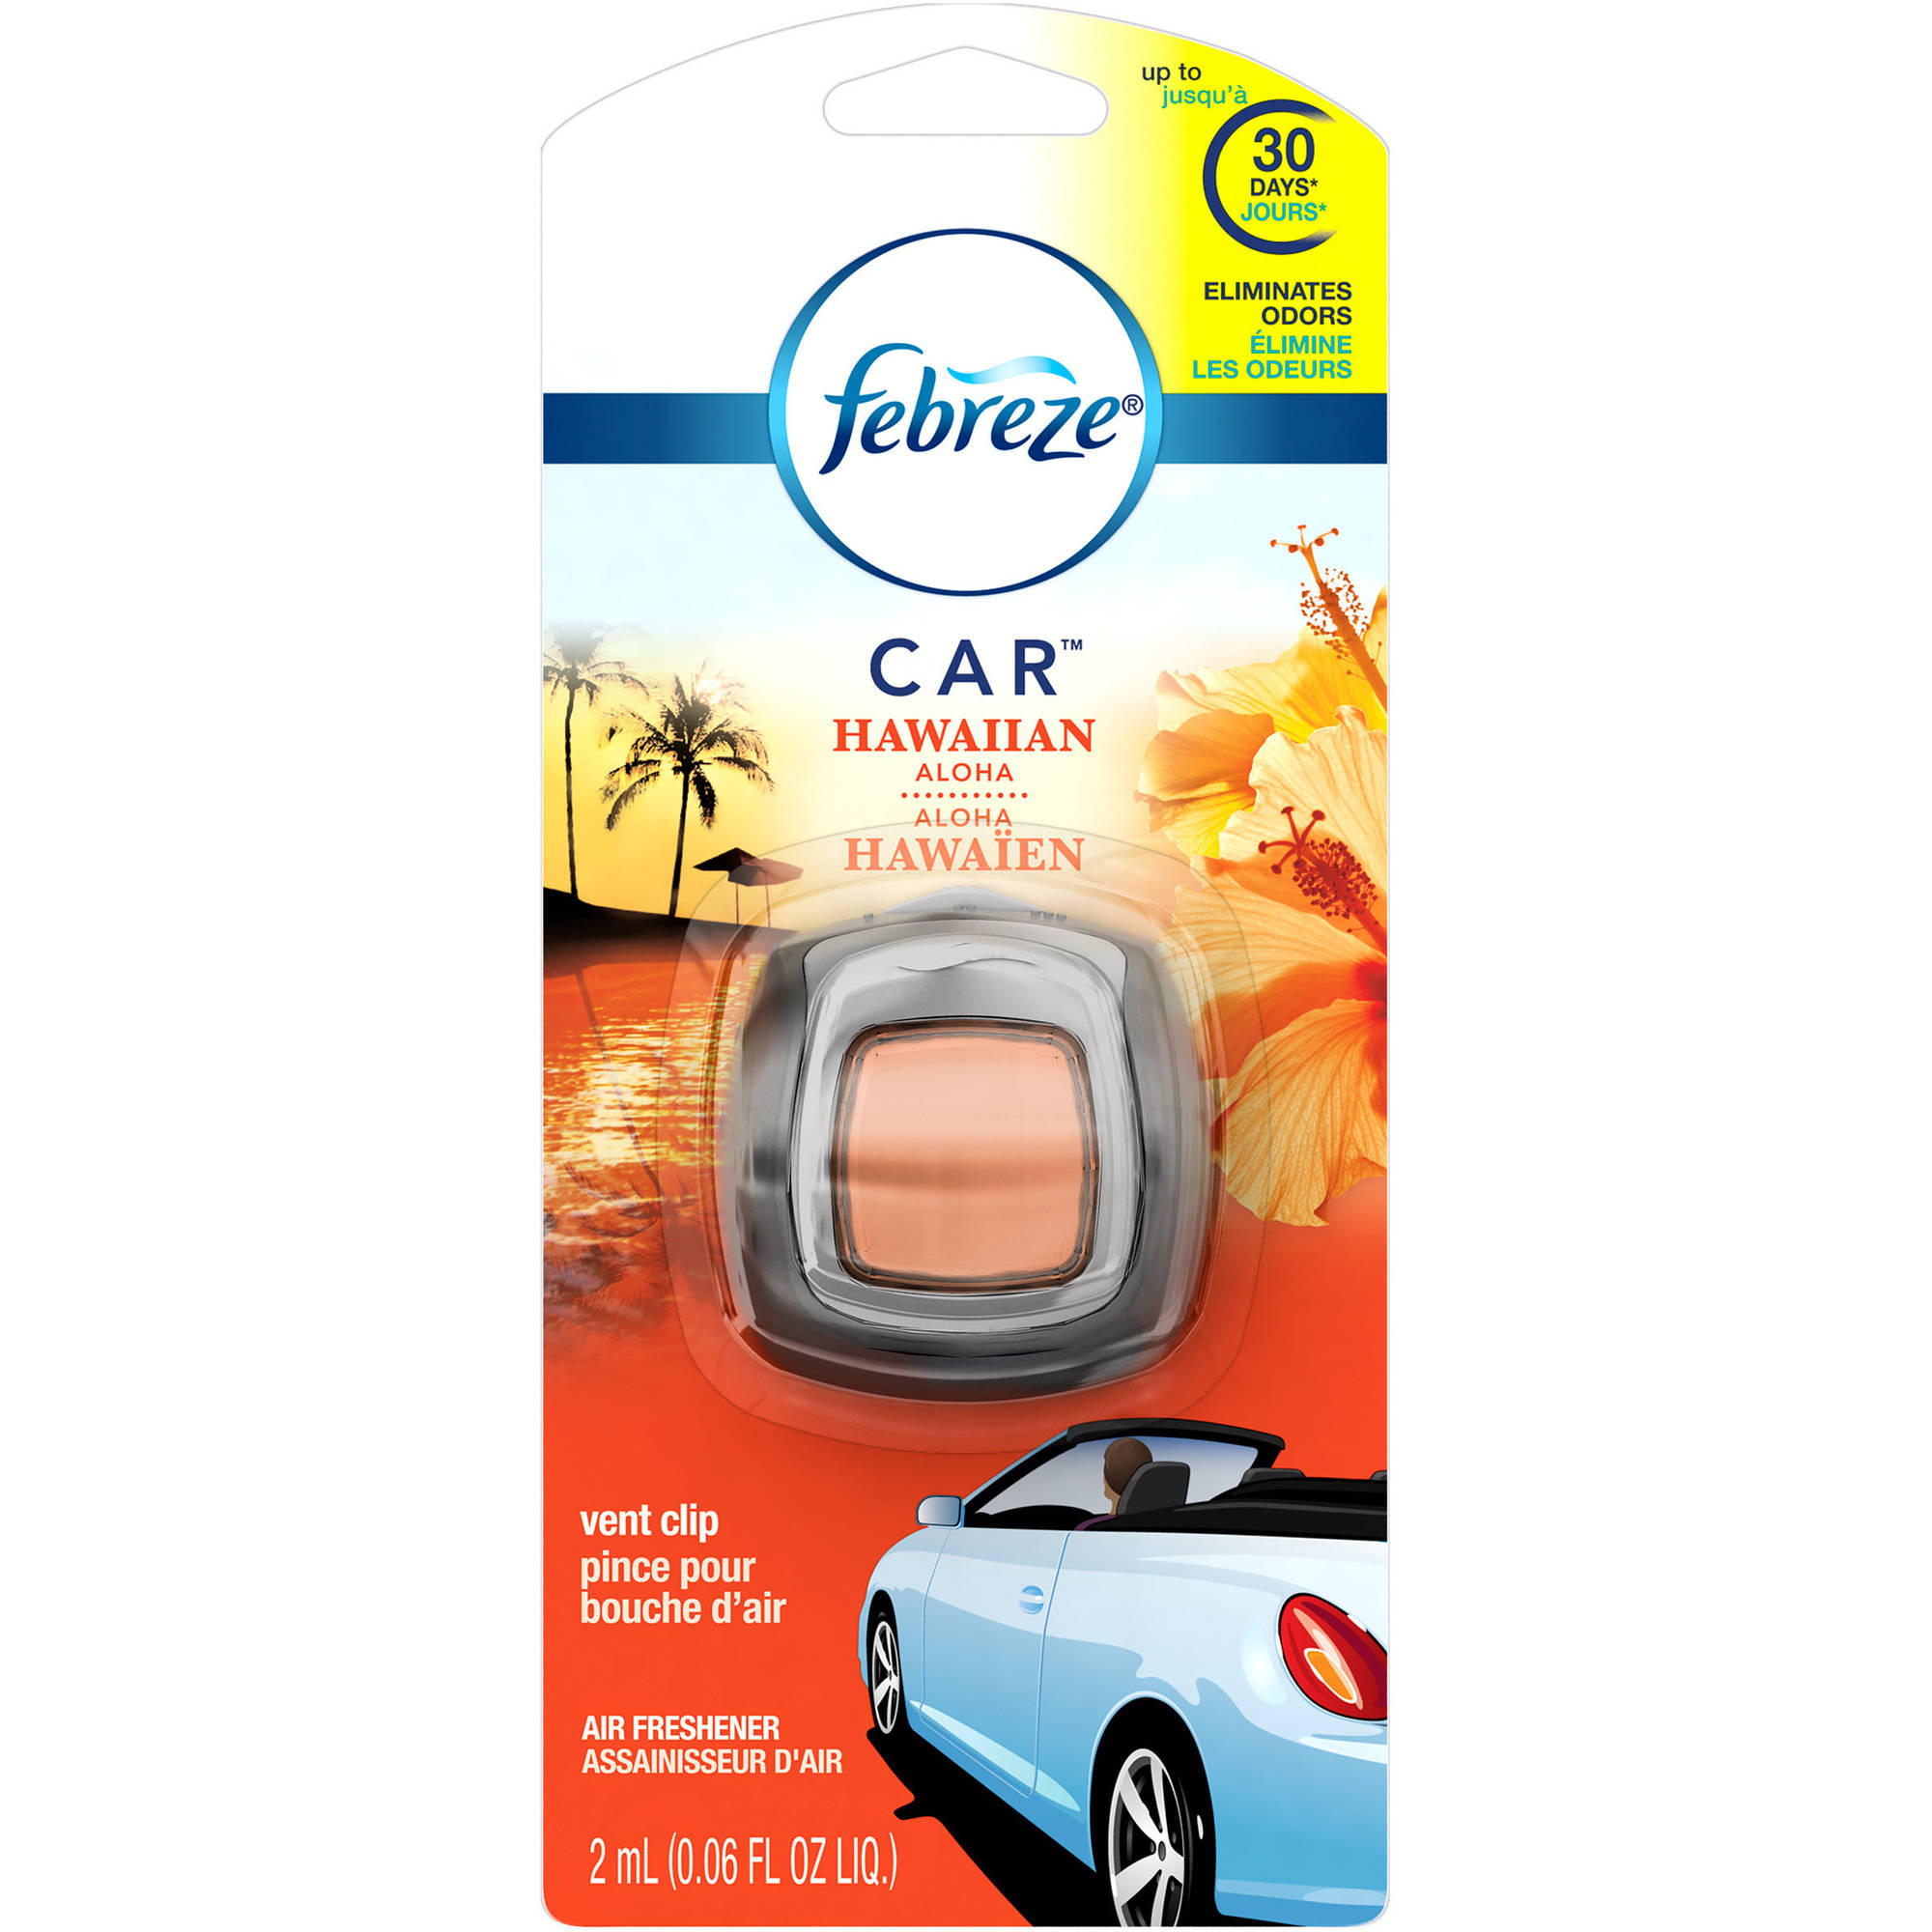 Febreze Car Vent Clips Air Freshener Hawaiian Aloha 2 ml